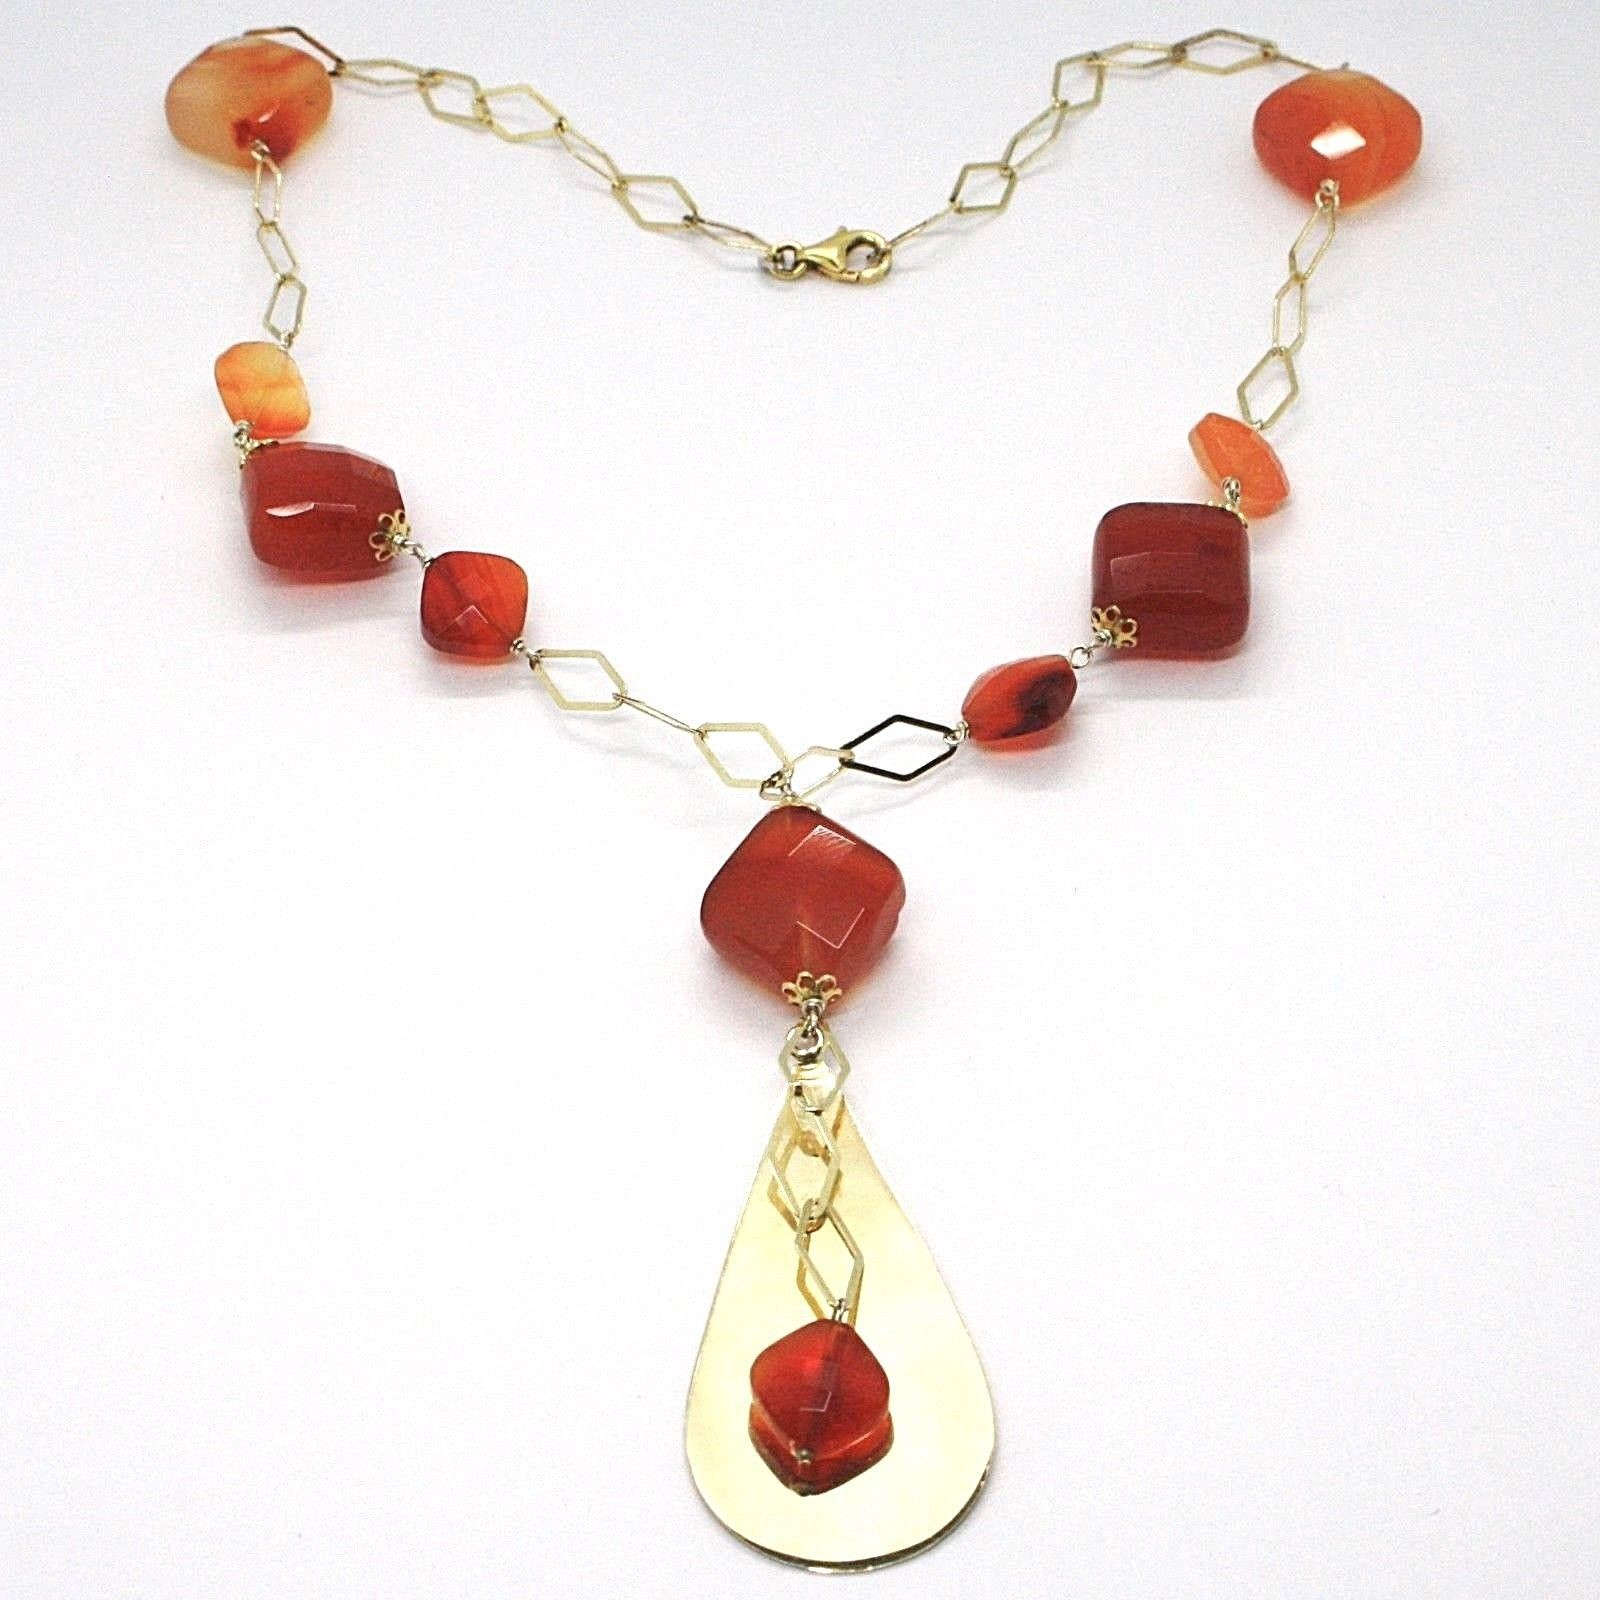 Silver necklace 925, Yellow, Brown Agate Square Drop Pendant